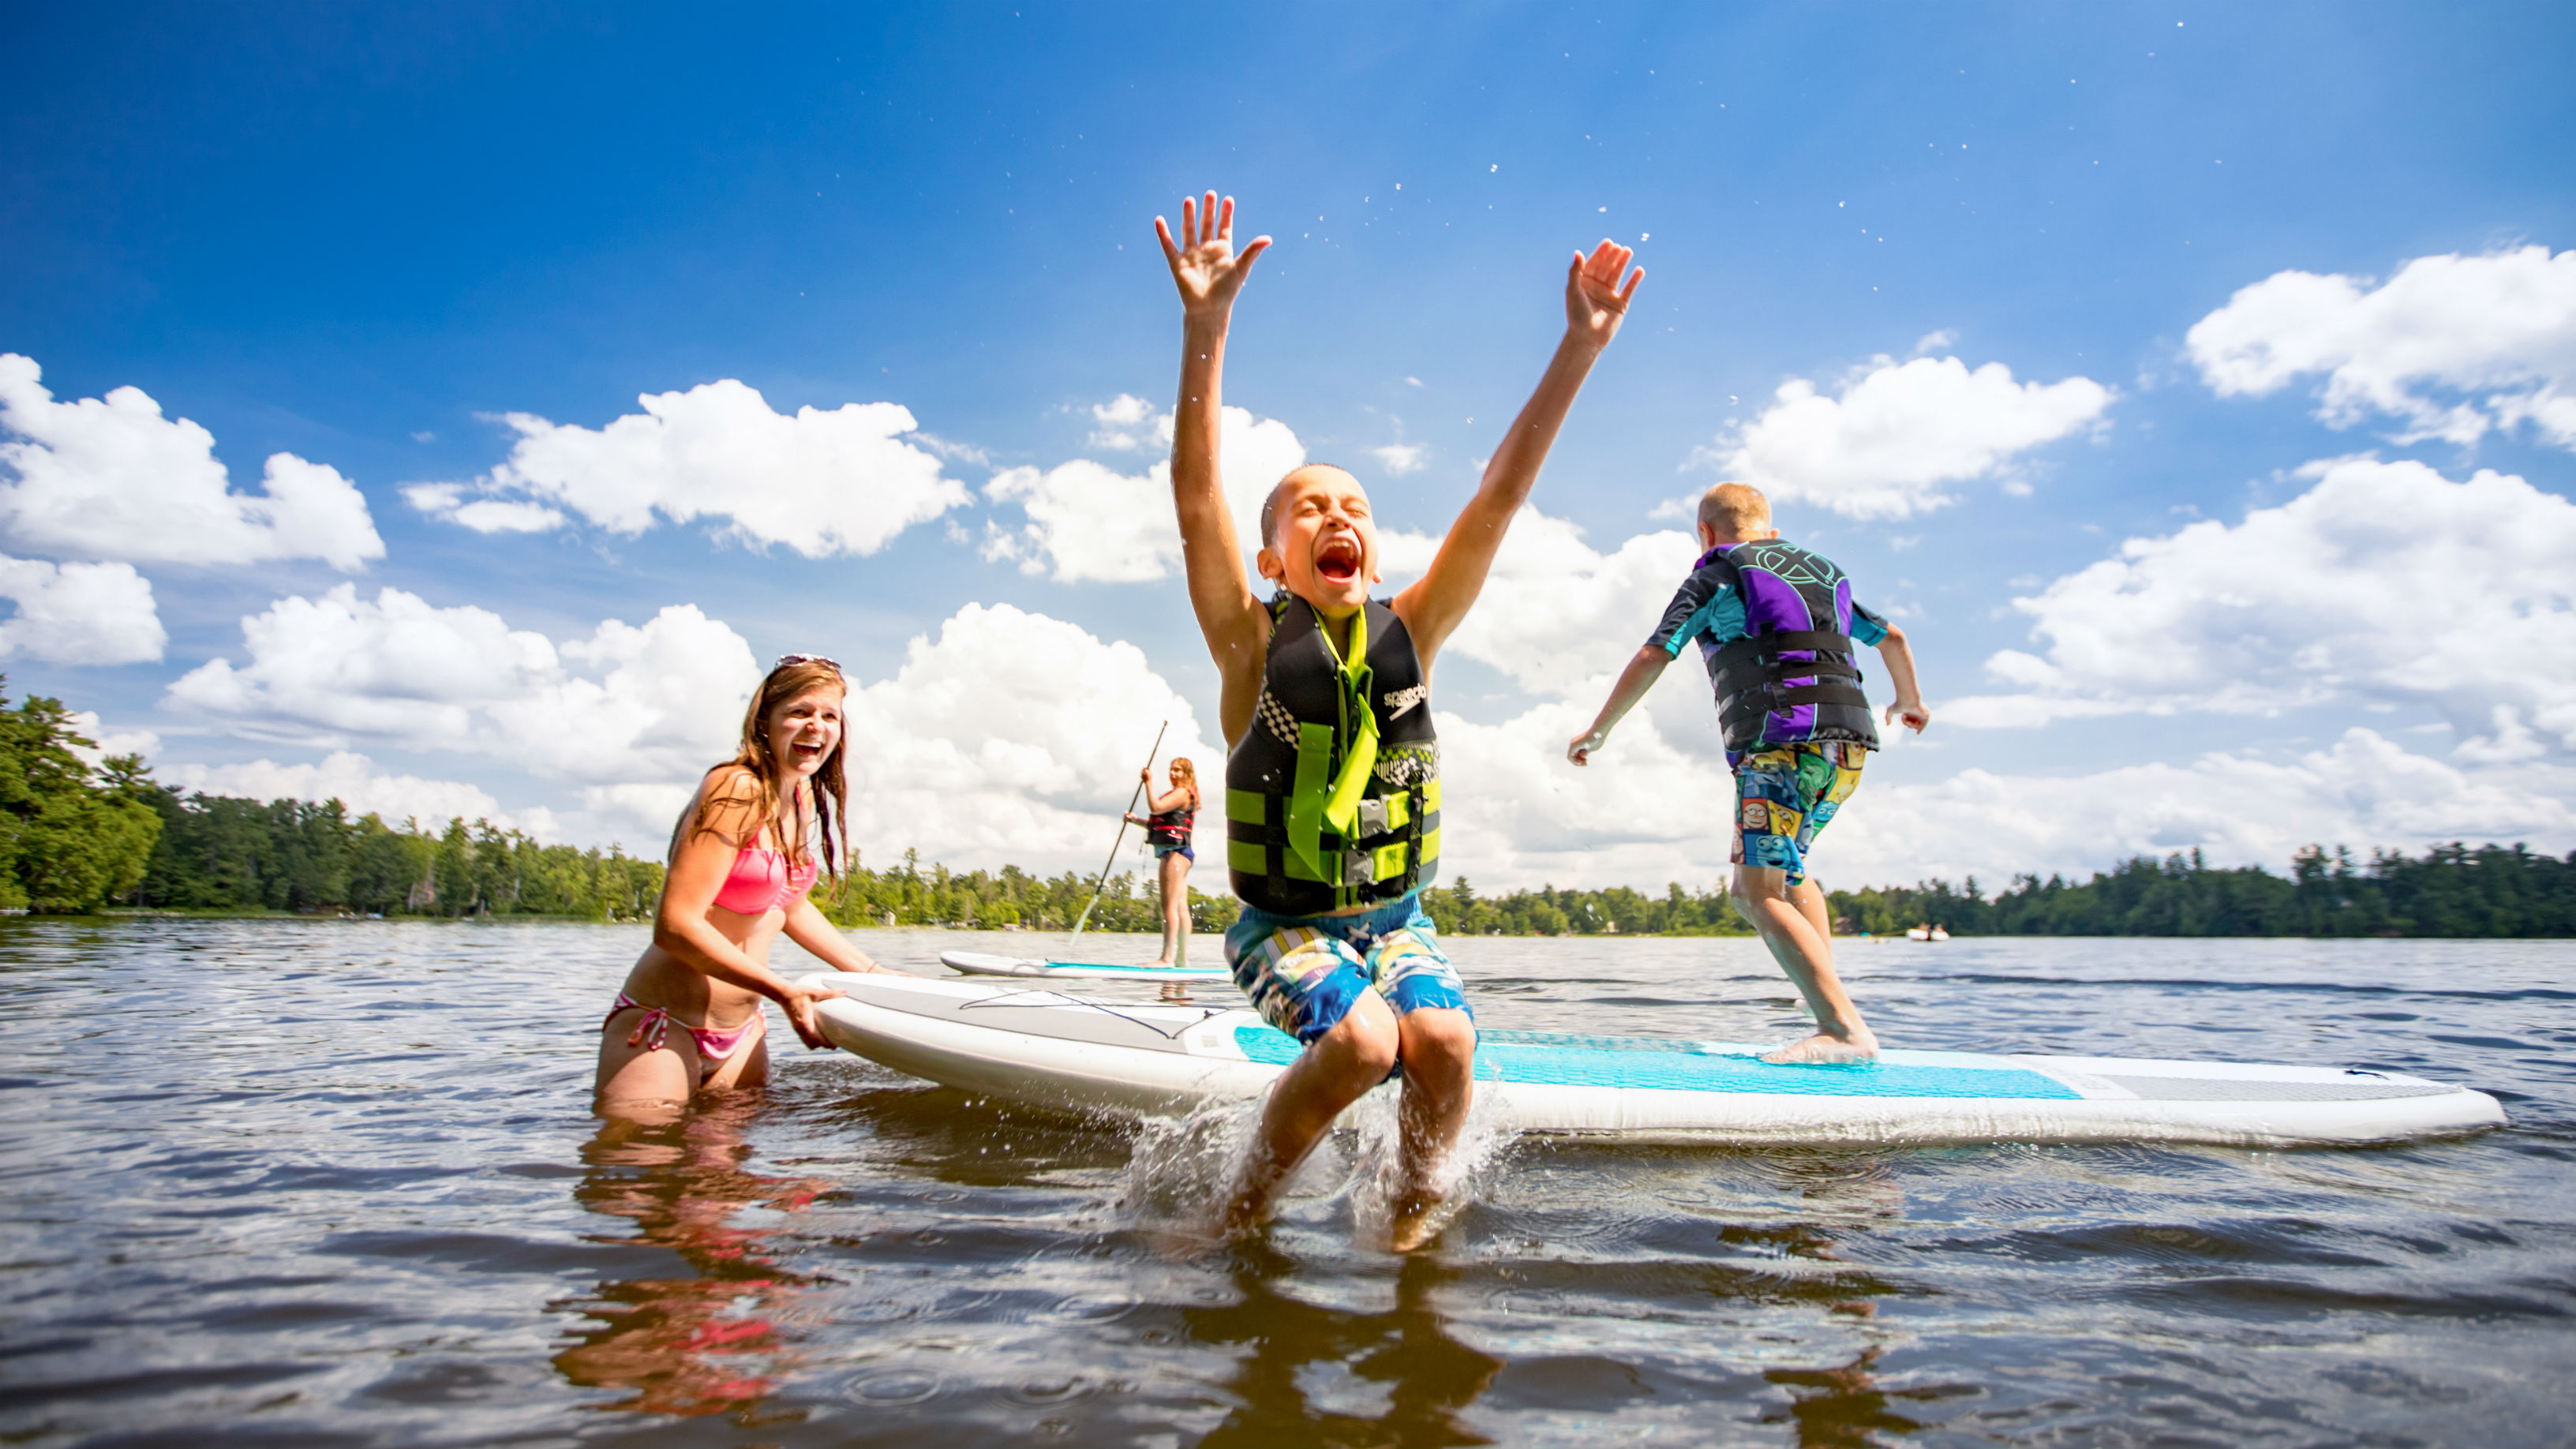 10 Fantastic Cheap Summer Vacation Ideas For Families summer vacation ideas summer getaways travel wisconsin 2021